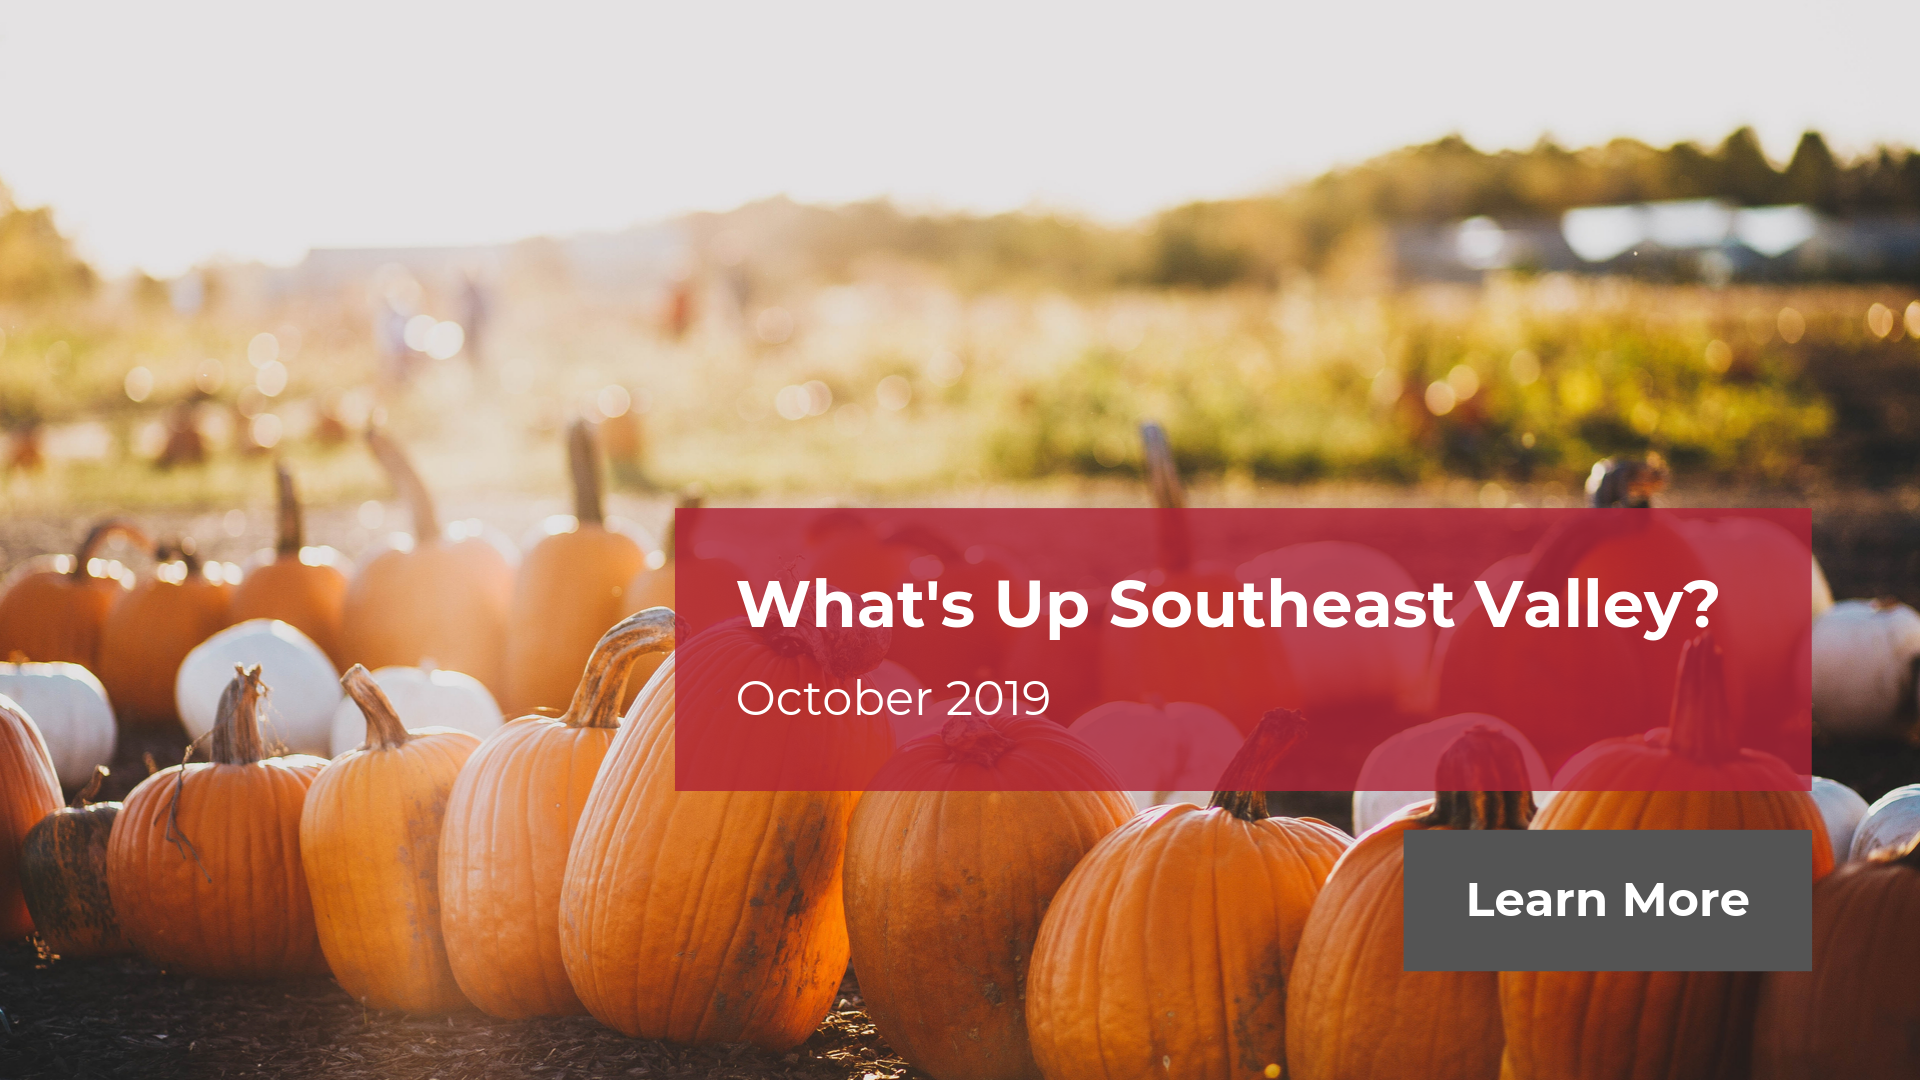 What's Up Southeast Valley - October 2019